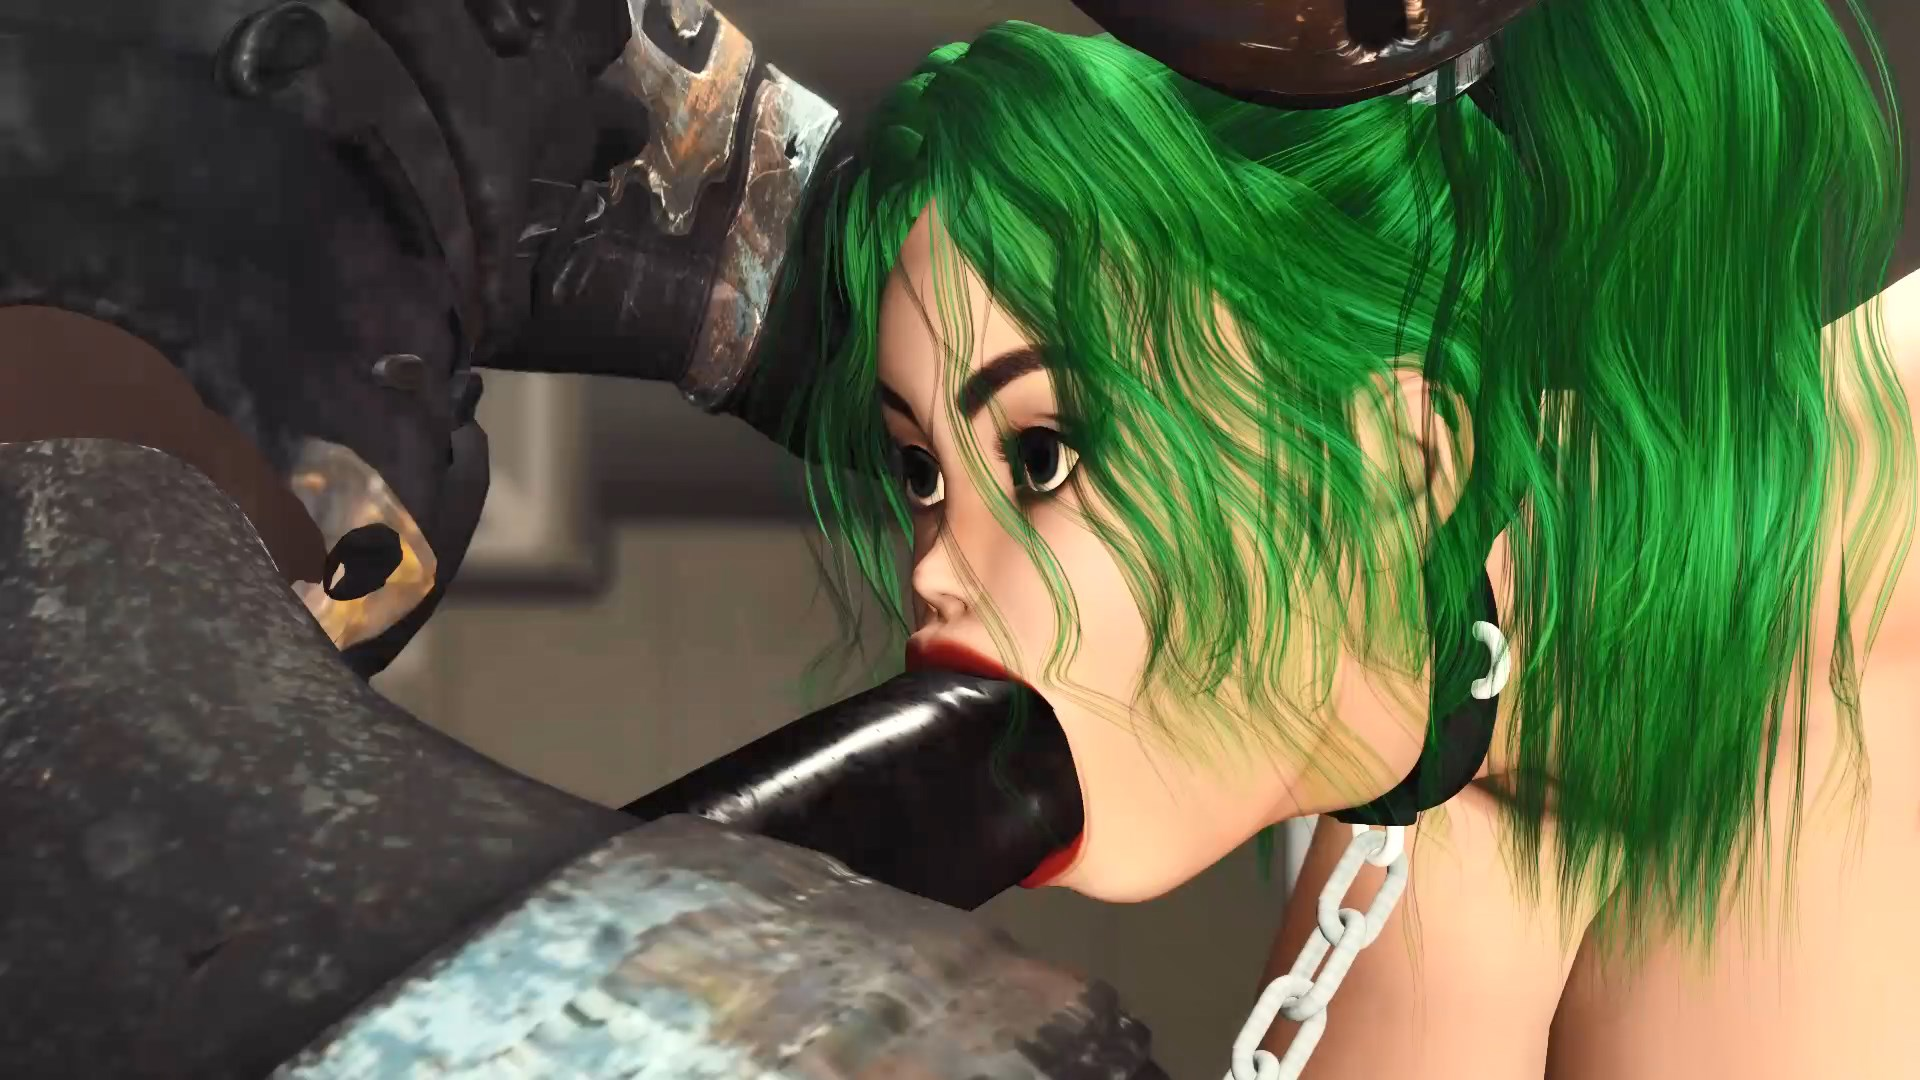 Sci-fi soldier extreme deepthroat hot sexy woman huge boobs in lab